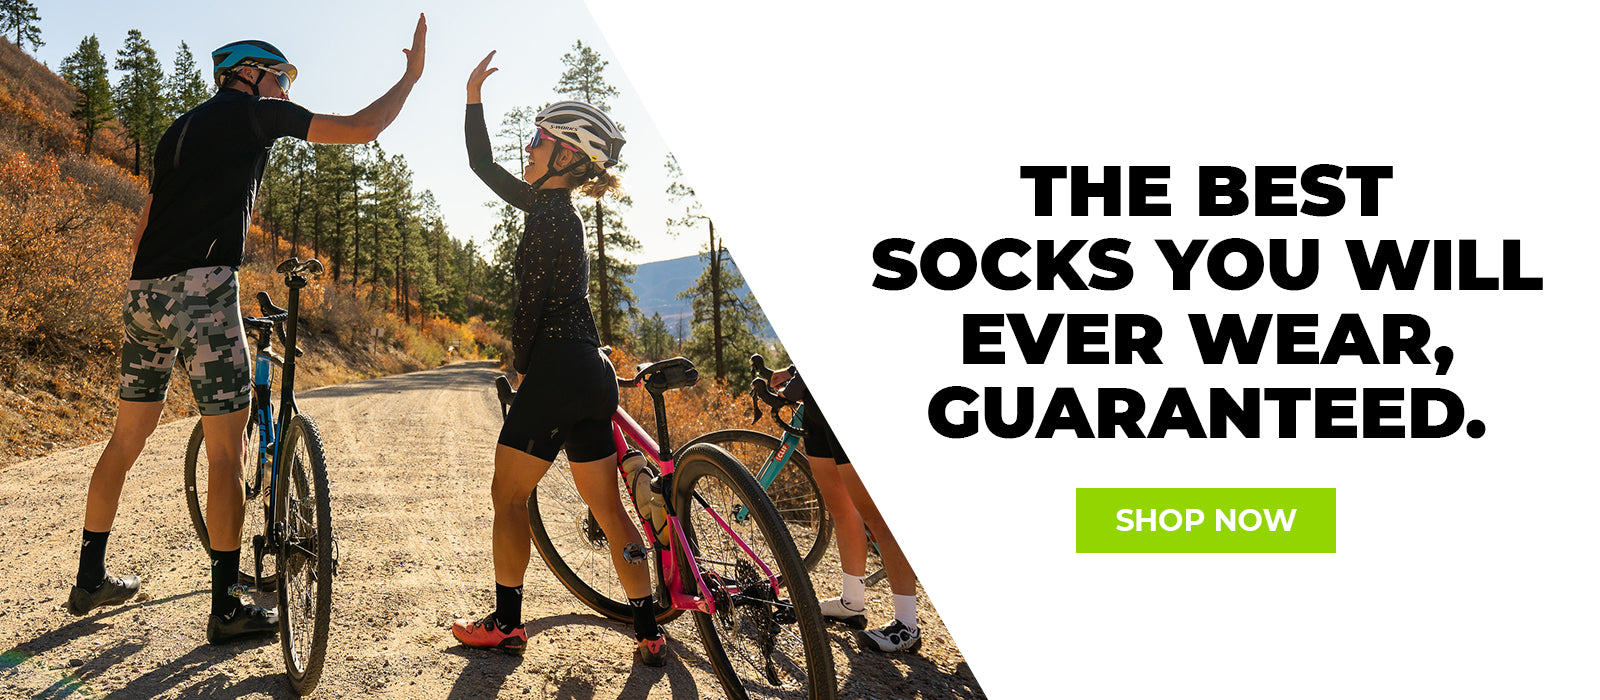 The Best Socks You Will Ever Wear, Guaranteed. Shop Now